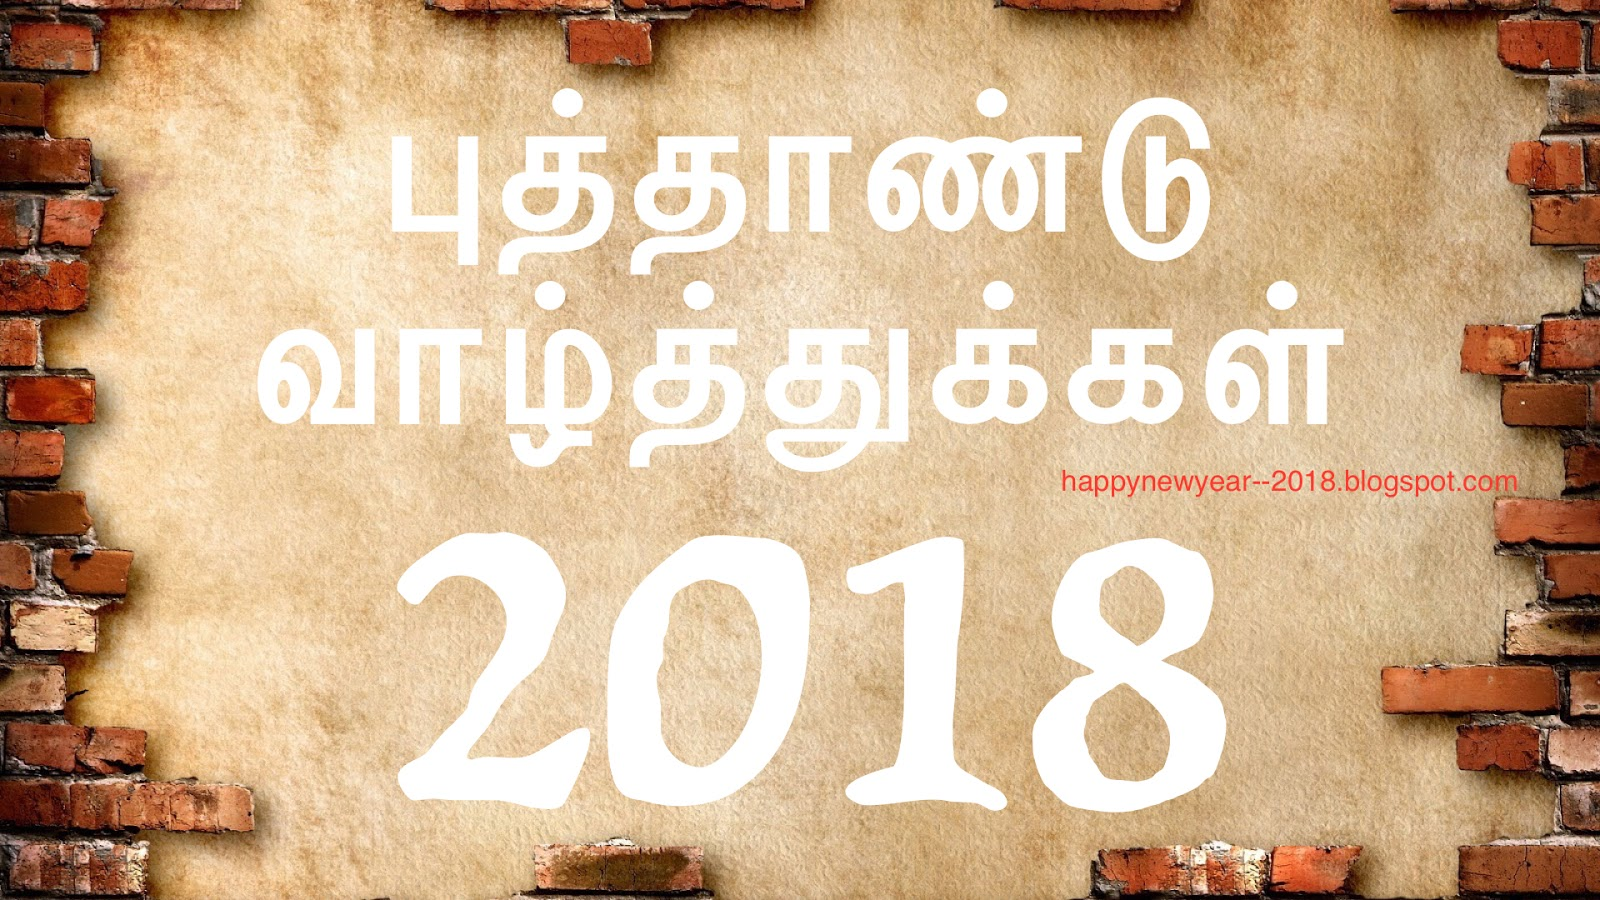 Happy New Year 2018 Tamil Wishes u0026 Wallpapers - W3Tutorials Happy